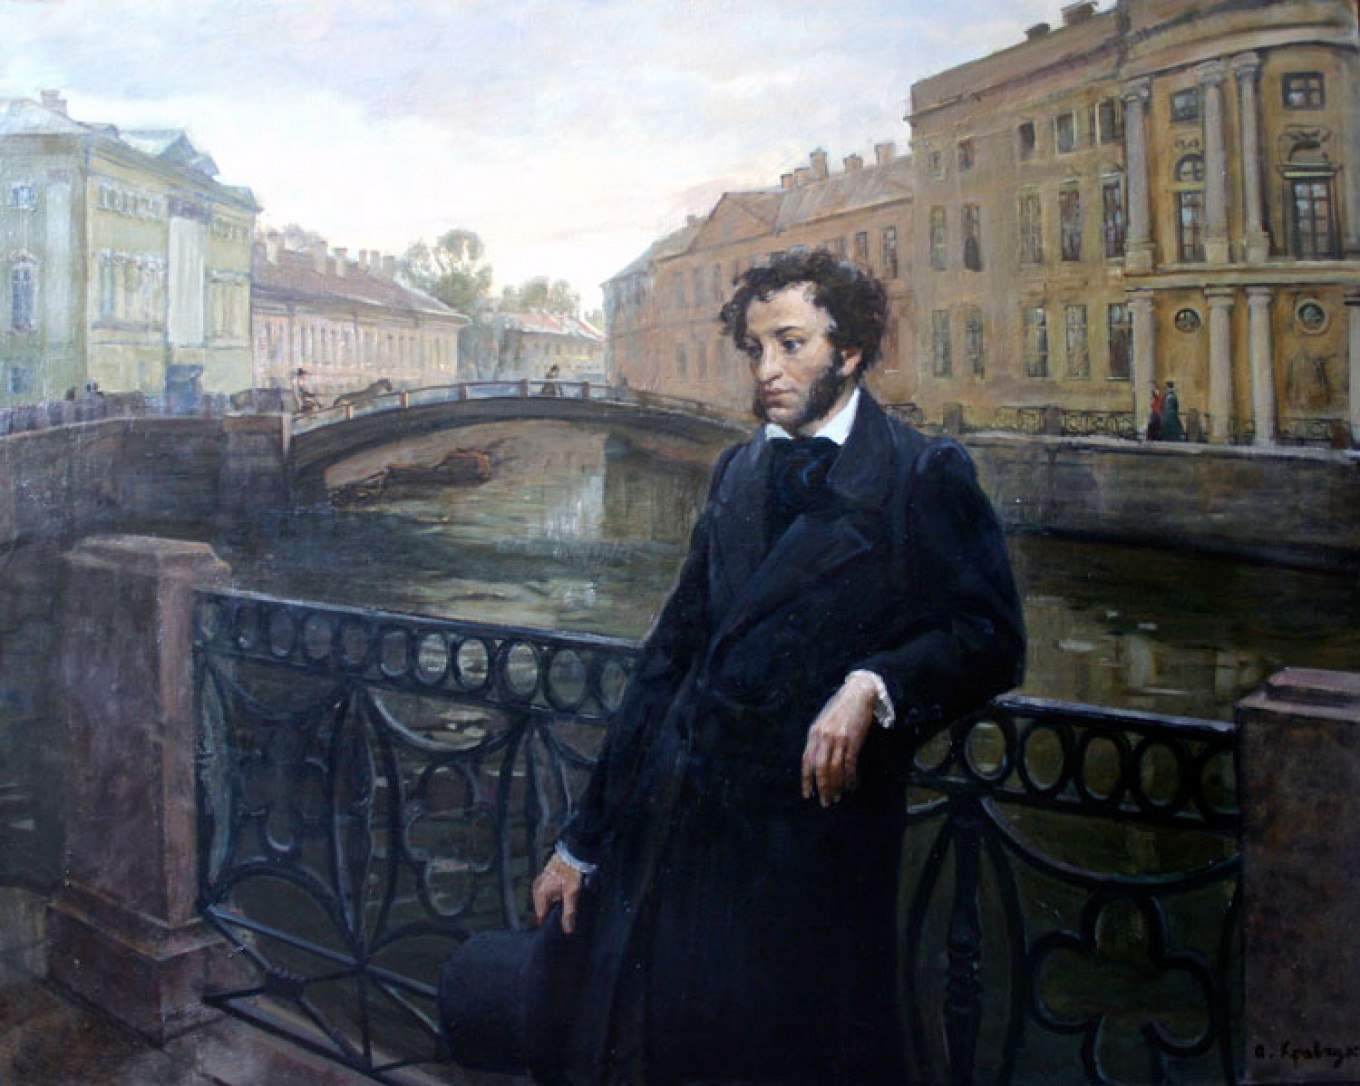 literary living Alexander Pushkin's St. Petersburg Home Goes on Sale for $860K Pushkin penned - The Moscow Times